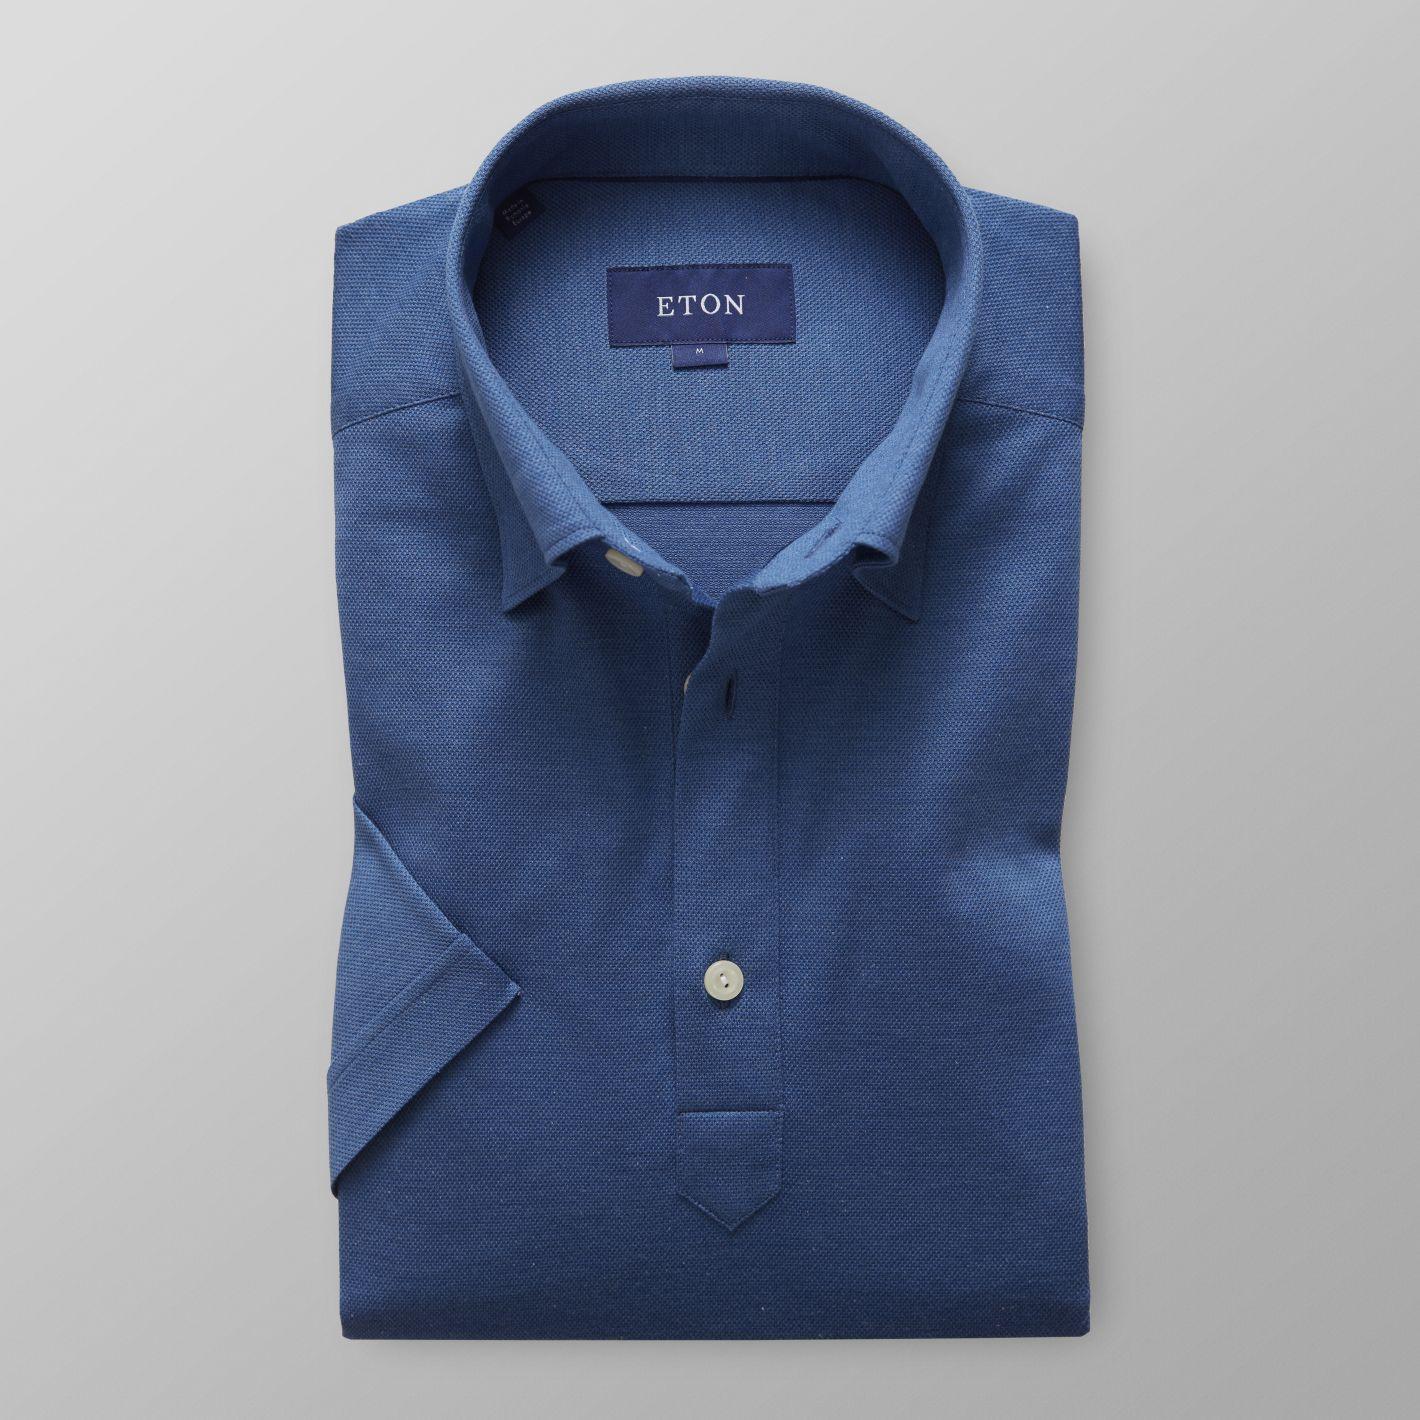 4d1a0ab04a Men's Blue Polo Short Sleeve Popover Shirt | Slim fit | Eton Shirts ...